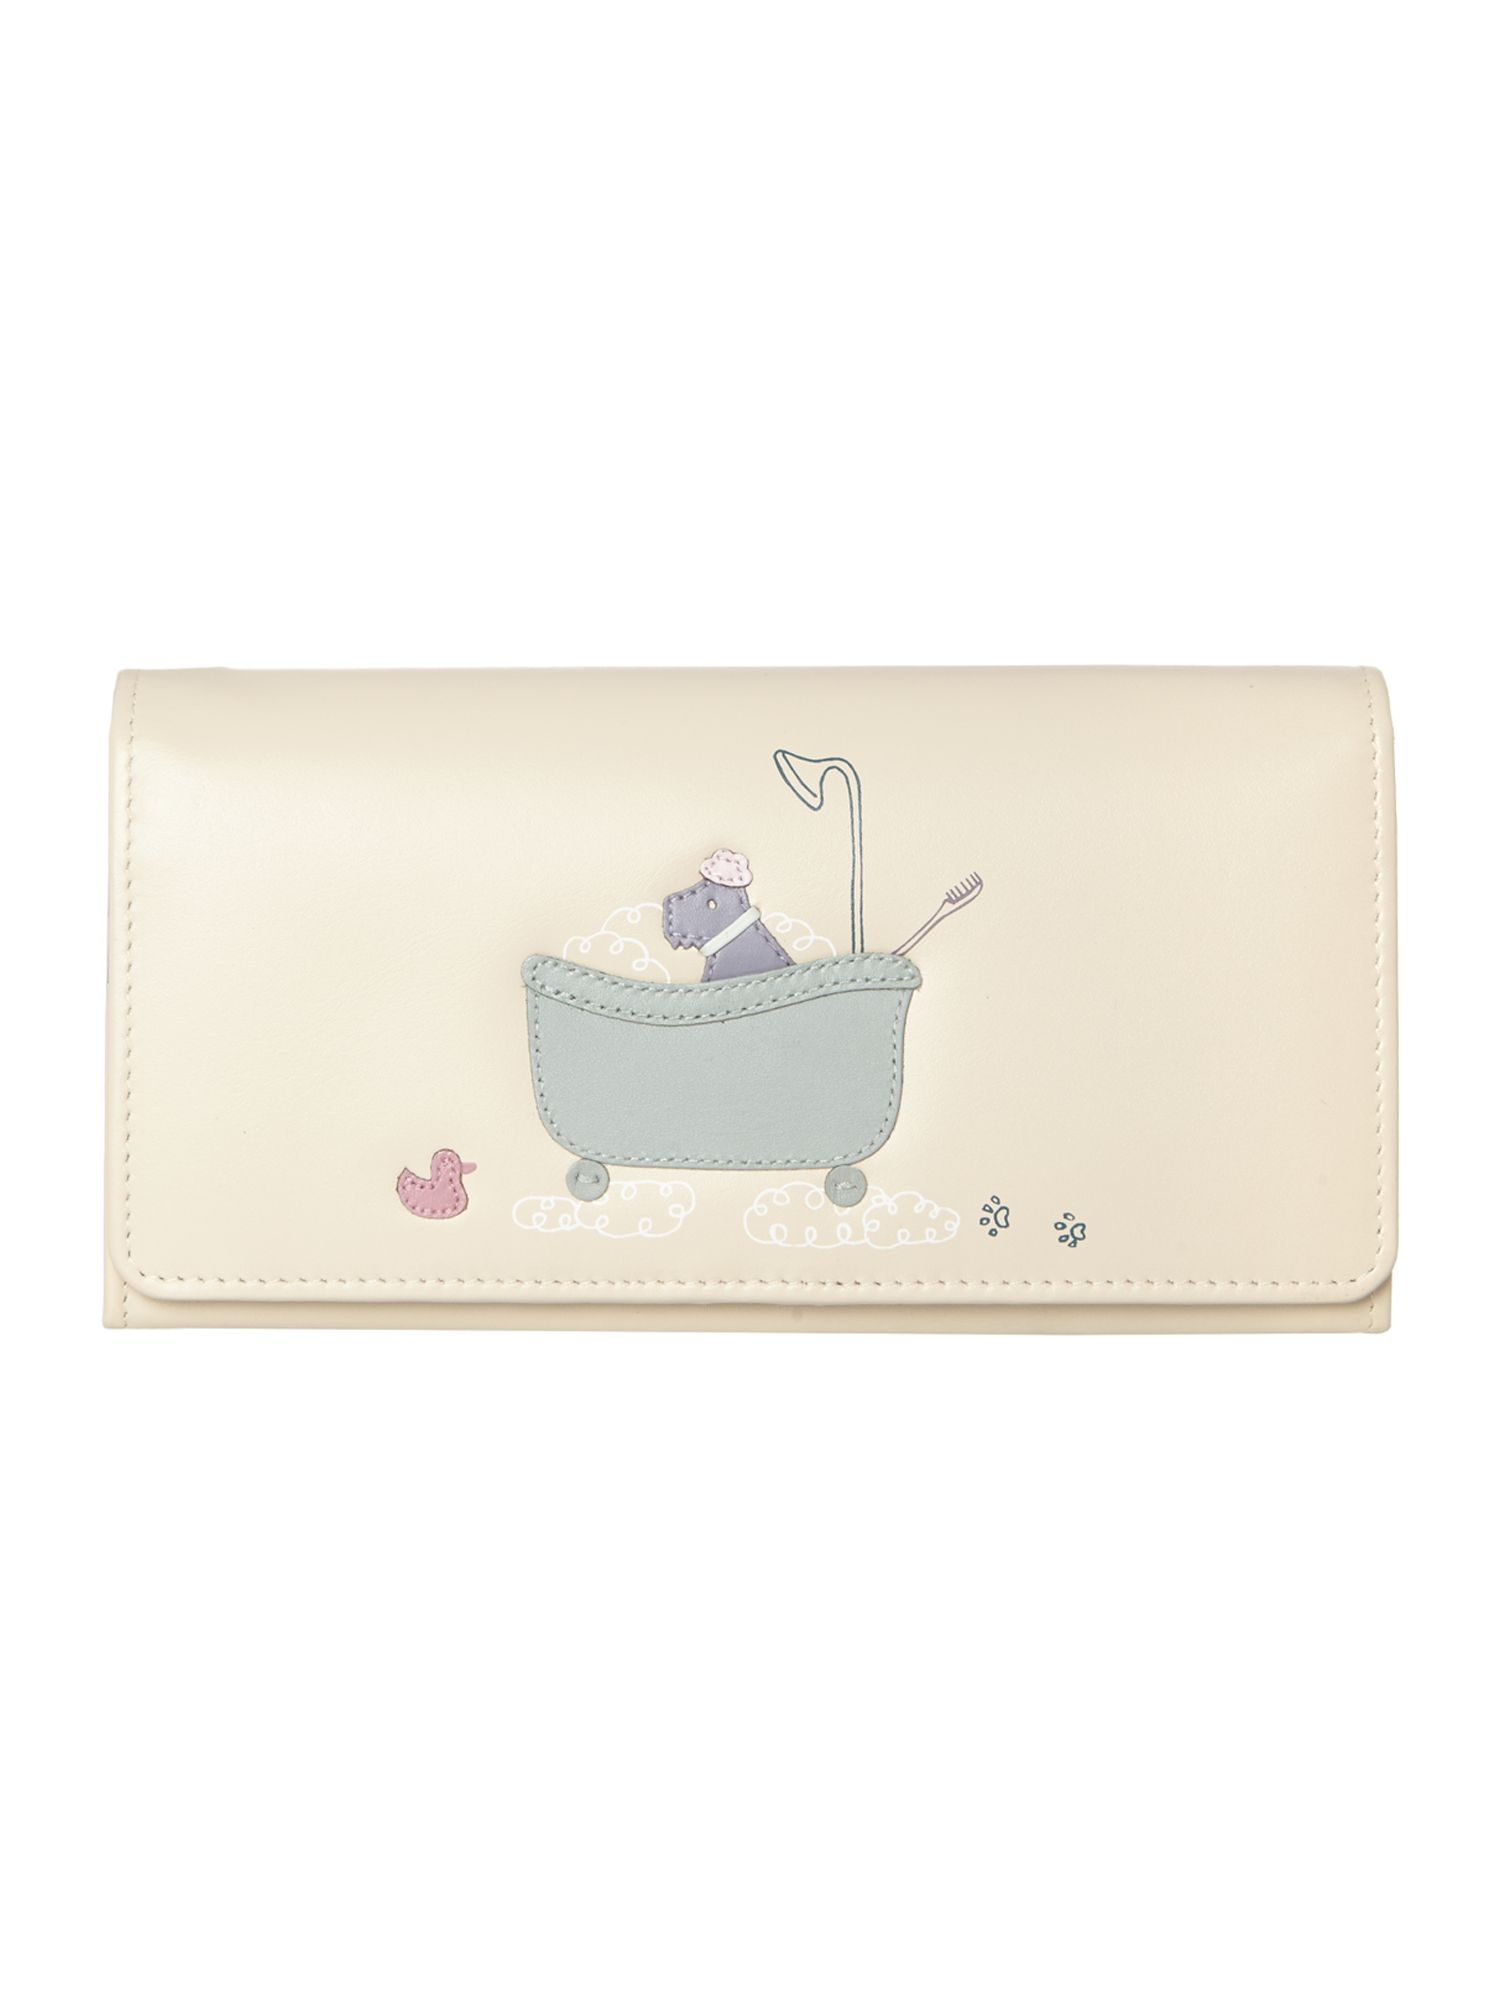 Bubble trouble ivory large flapover matinee purse